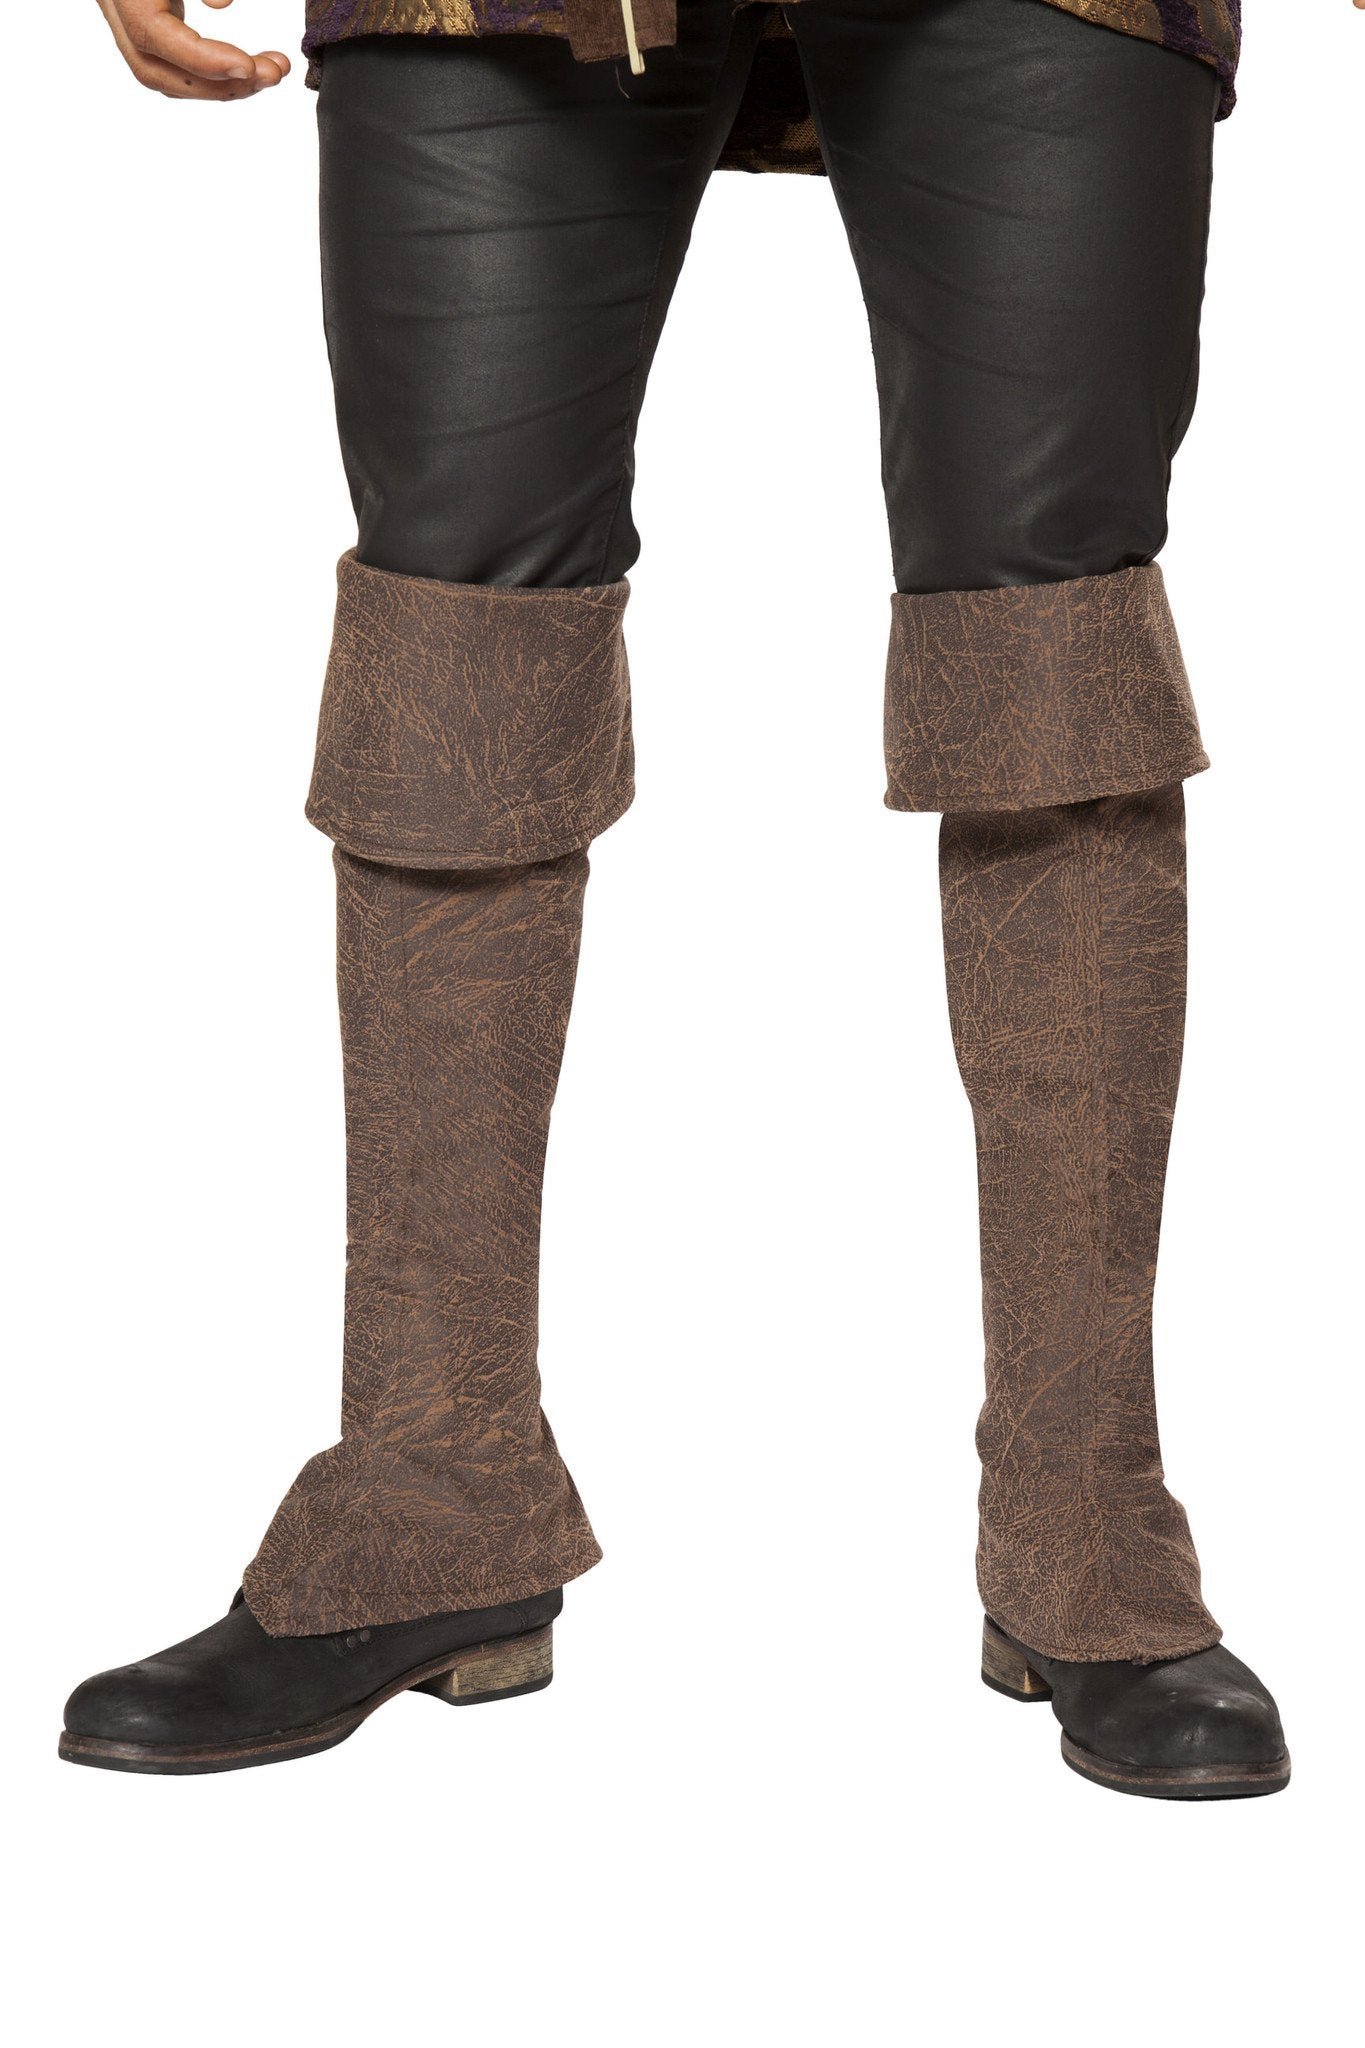 Buy Pirate Boot Covers with Zipper Detail from Rave Fix for $18.75 with Same Day Shipping Designed by Roma Costume 4650B-AS-O/S